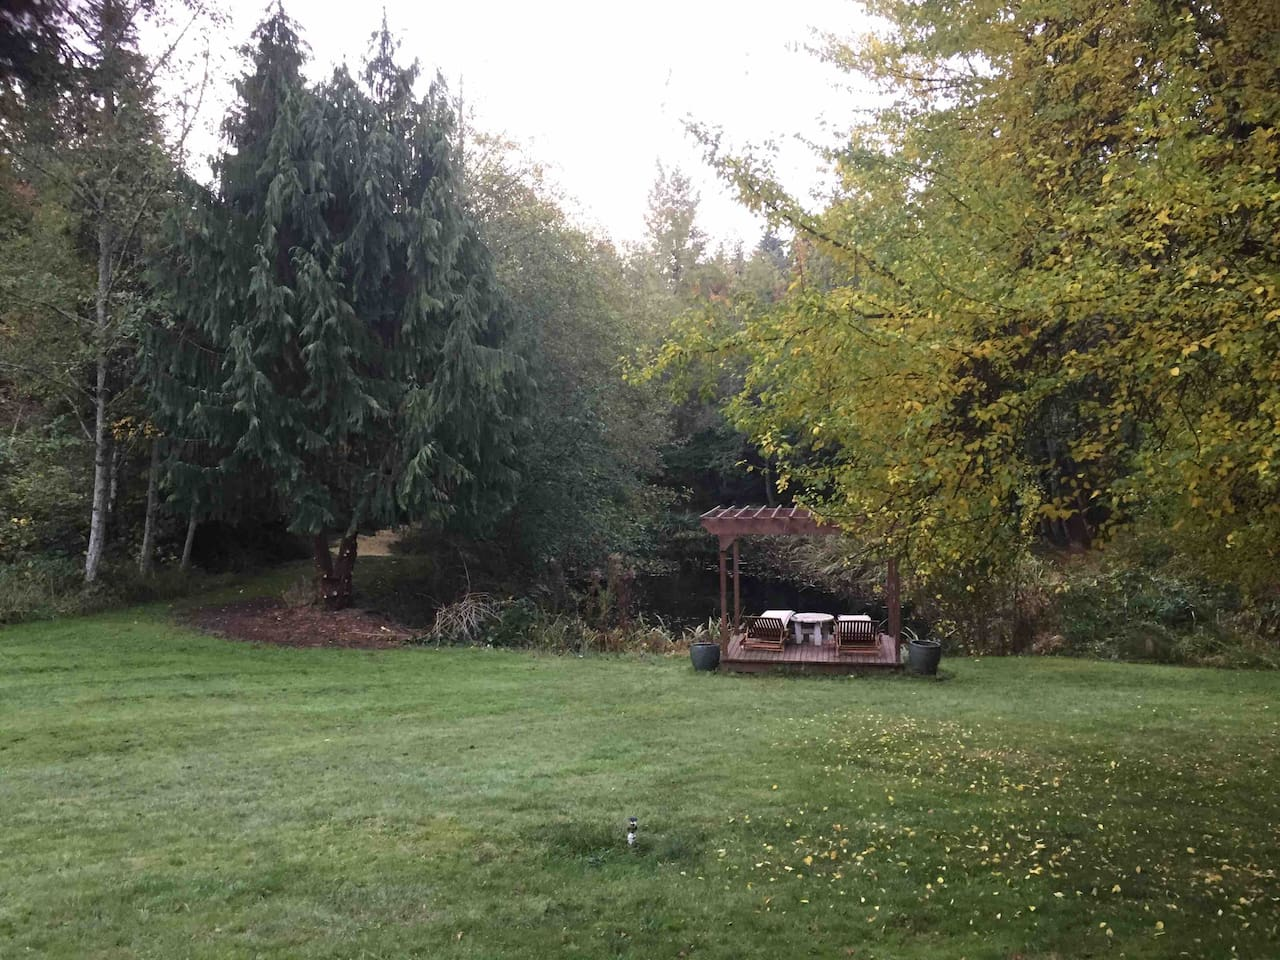 This is the pond on our property with a wooden deck/pergola to lounge and enjoy the serenity of the pond life all around.